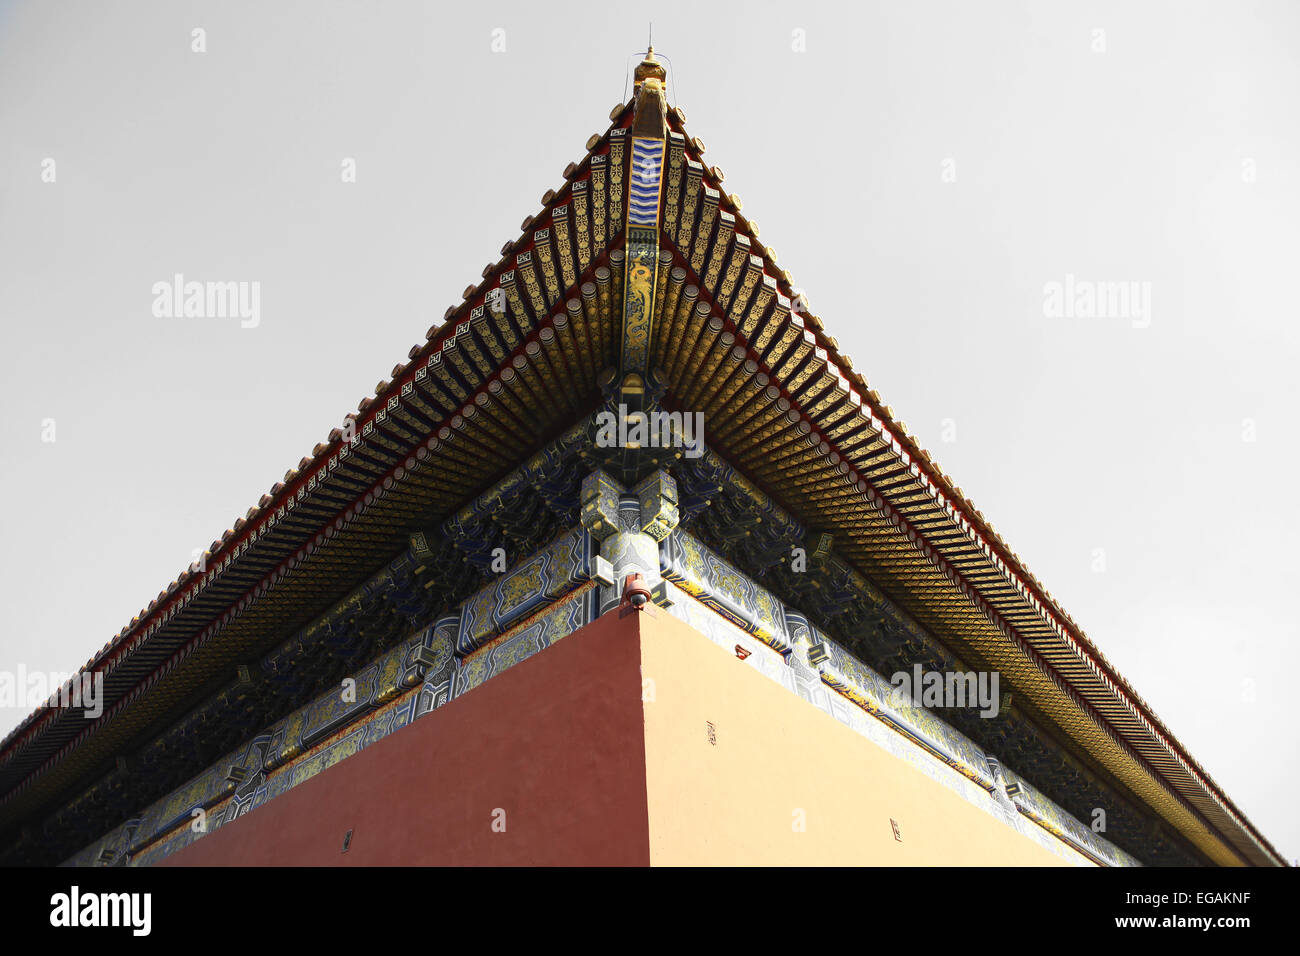 Chinese Traditional Pagoda Style Roof Building Stock